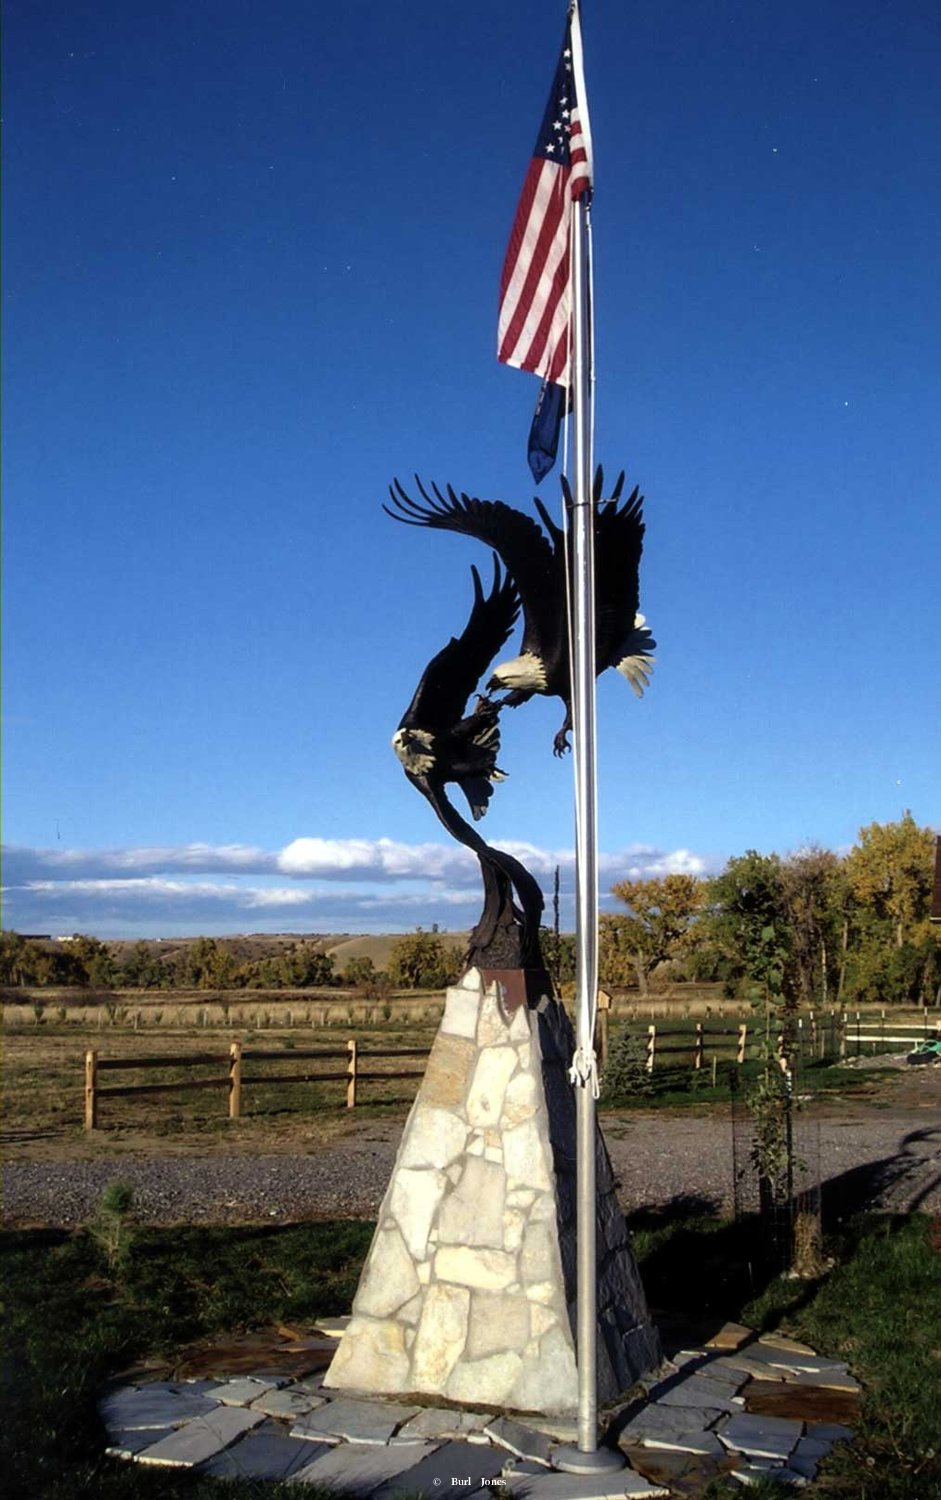 """American Sky""<br>1.5 Life Size - 8.5' Wing Span<br>Edition of 10 ""American Sky""  Monumental Sculpture  Lifesize Sculpture"